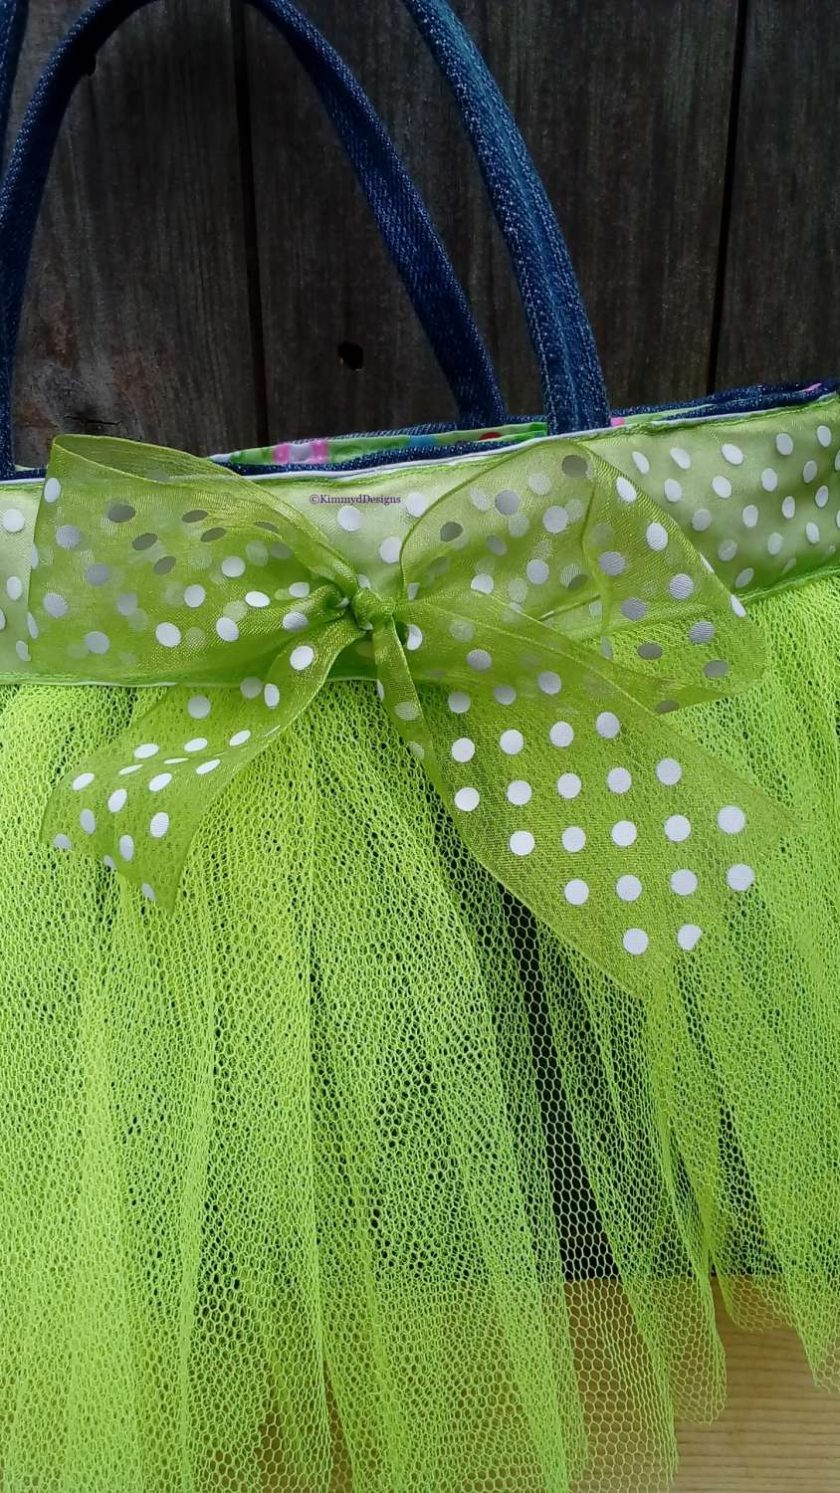 Kids Handbag (from recycled jeans) Tutu with Bow Fully Lined Bag Gift FREE UK POSTAGE 6